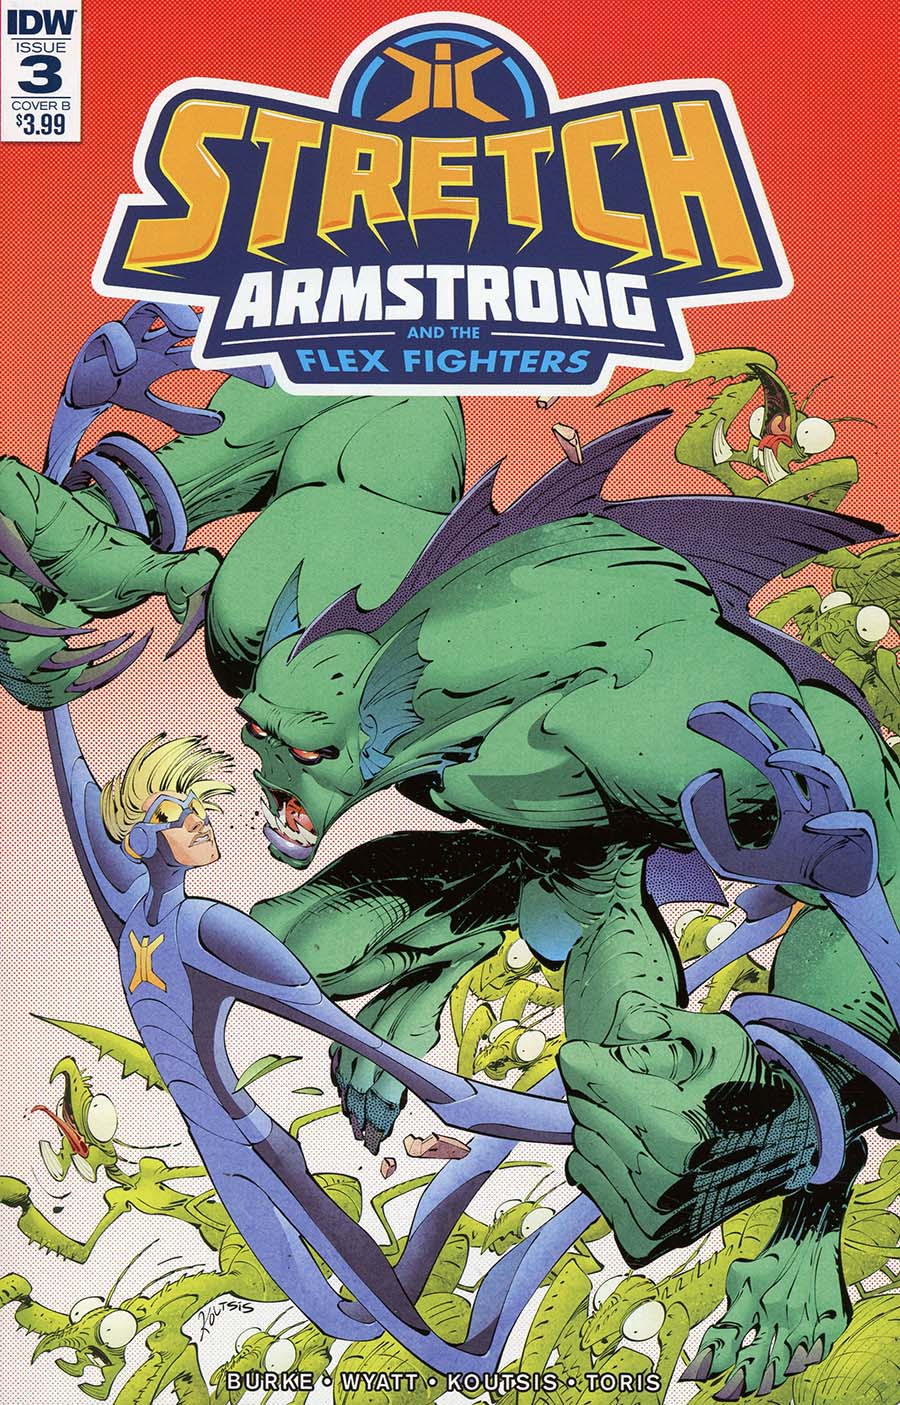 Stretch Armstrong And The Flex Fighters #3 Cover B Variant Nikos Koutsis Cover